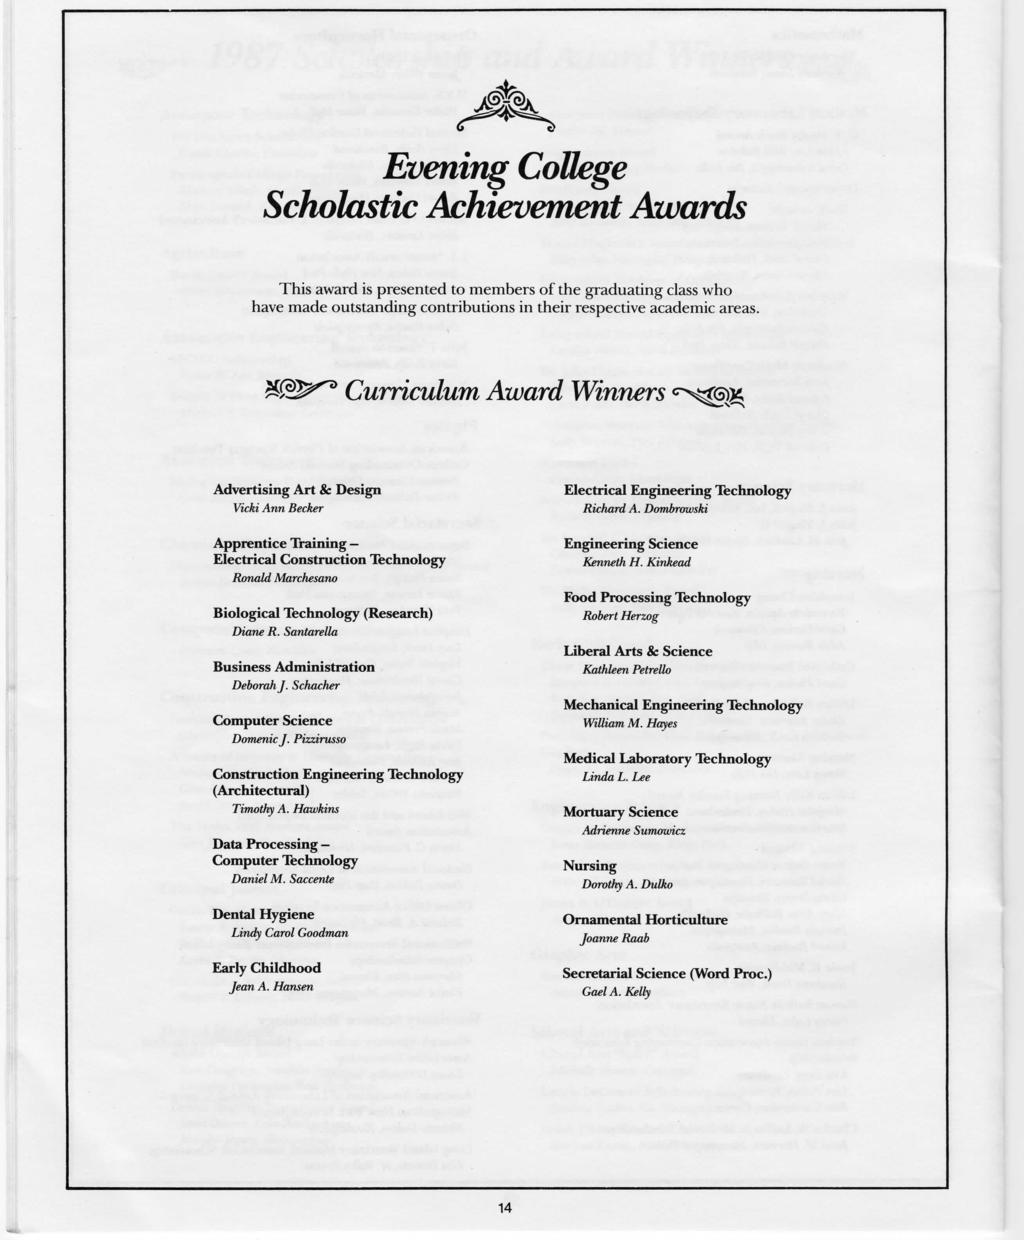 Evening College Scholastic Achievement Awards This award is presented to members of the graduating class who have made outstanding contributions in their respective academic areas.